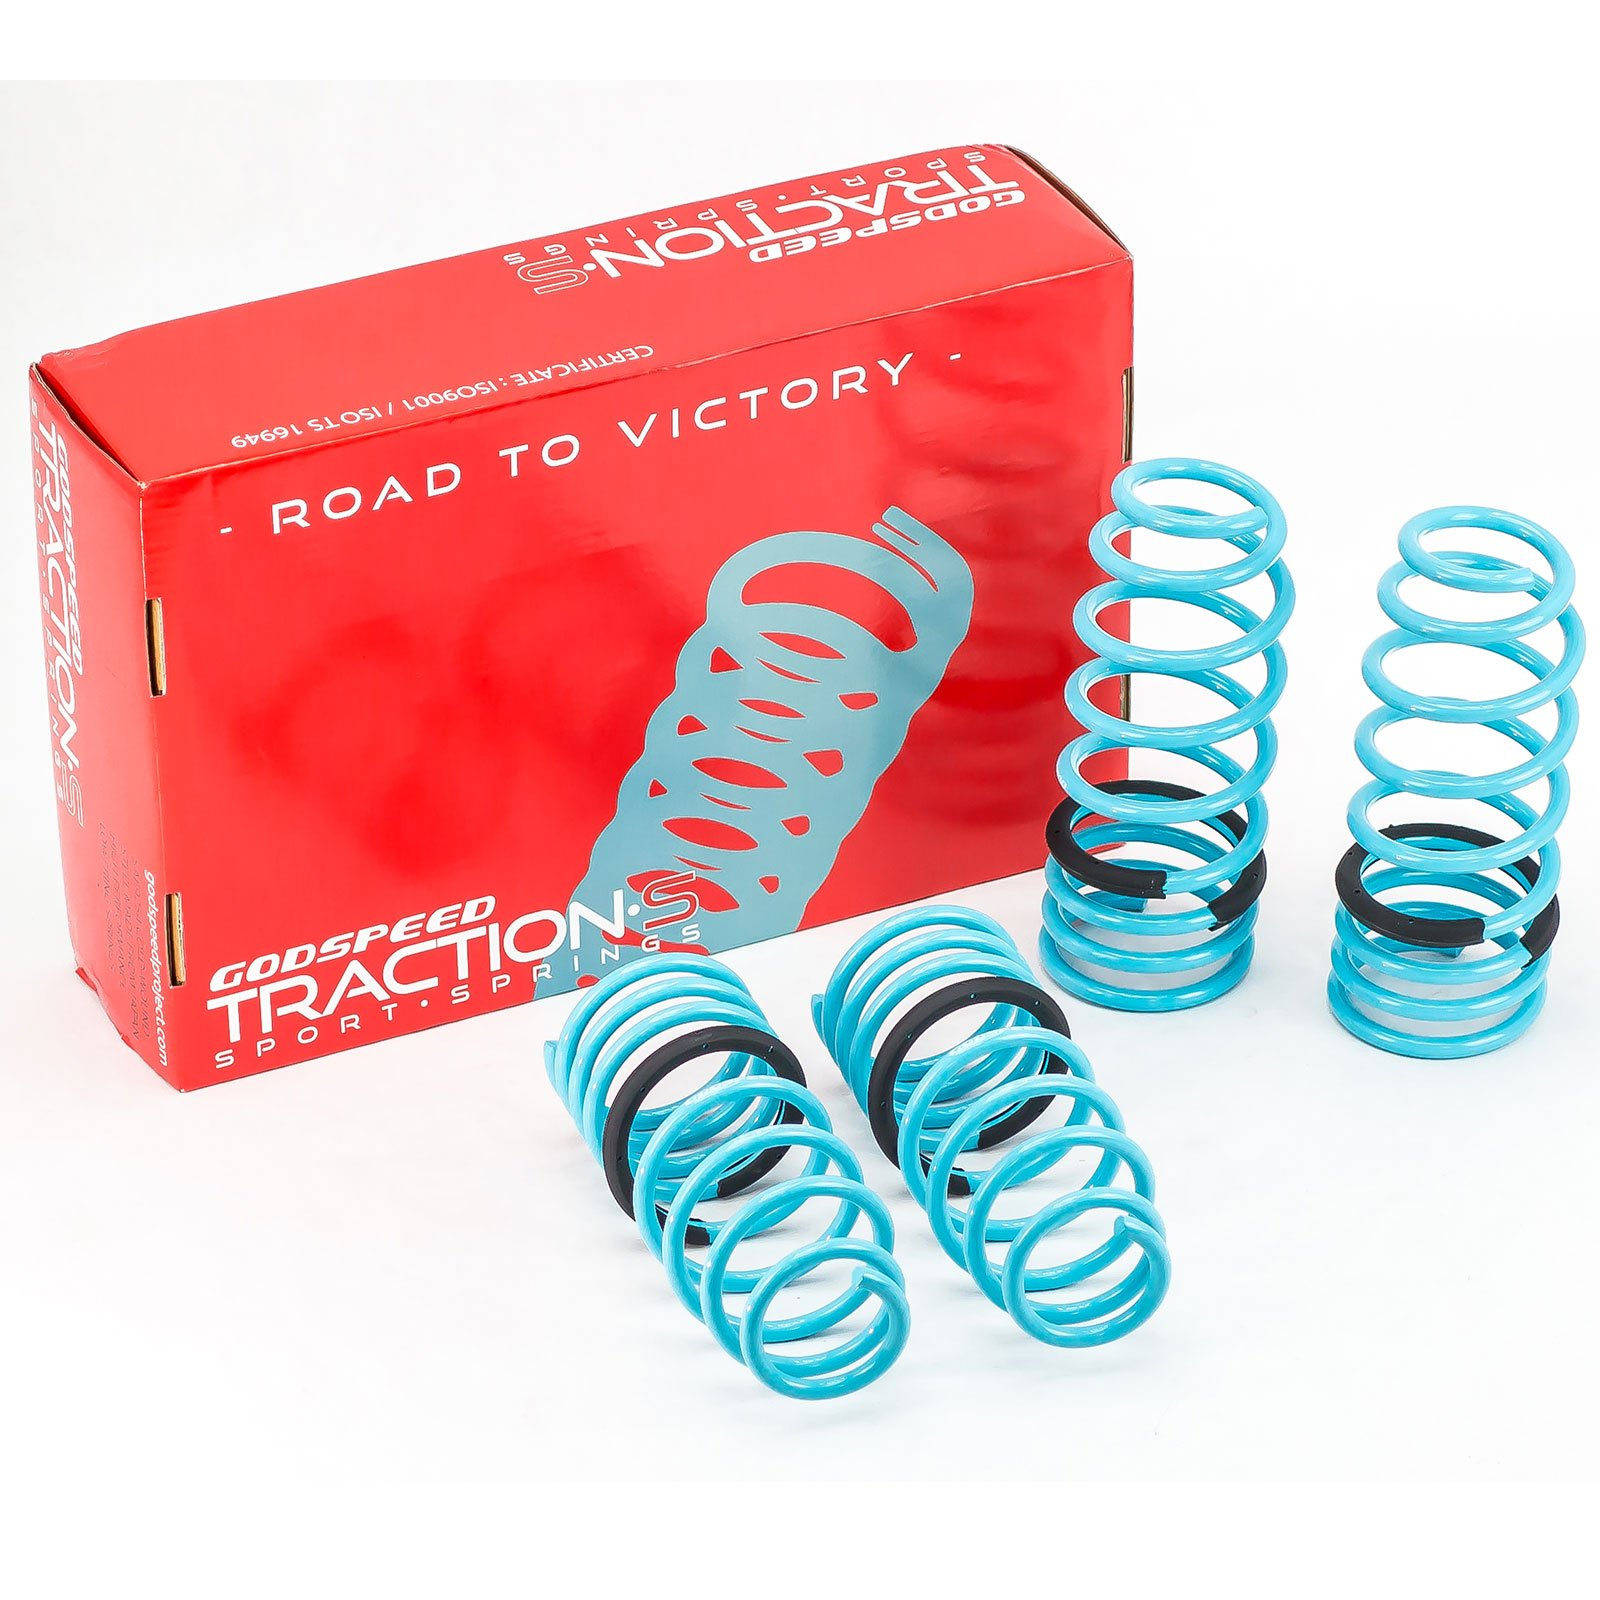 Godspeed(LS-TS-MA-0006) Traction-S Performance Lowering Springs, Set of 4, Mazda RX-8 2004-2011(SE3P) by Godspeed